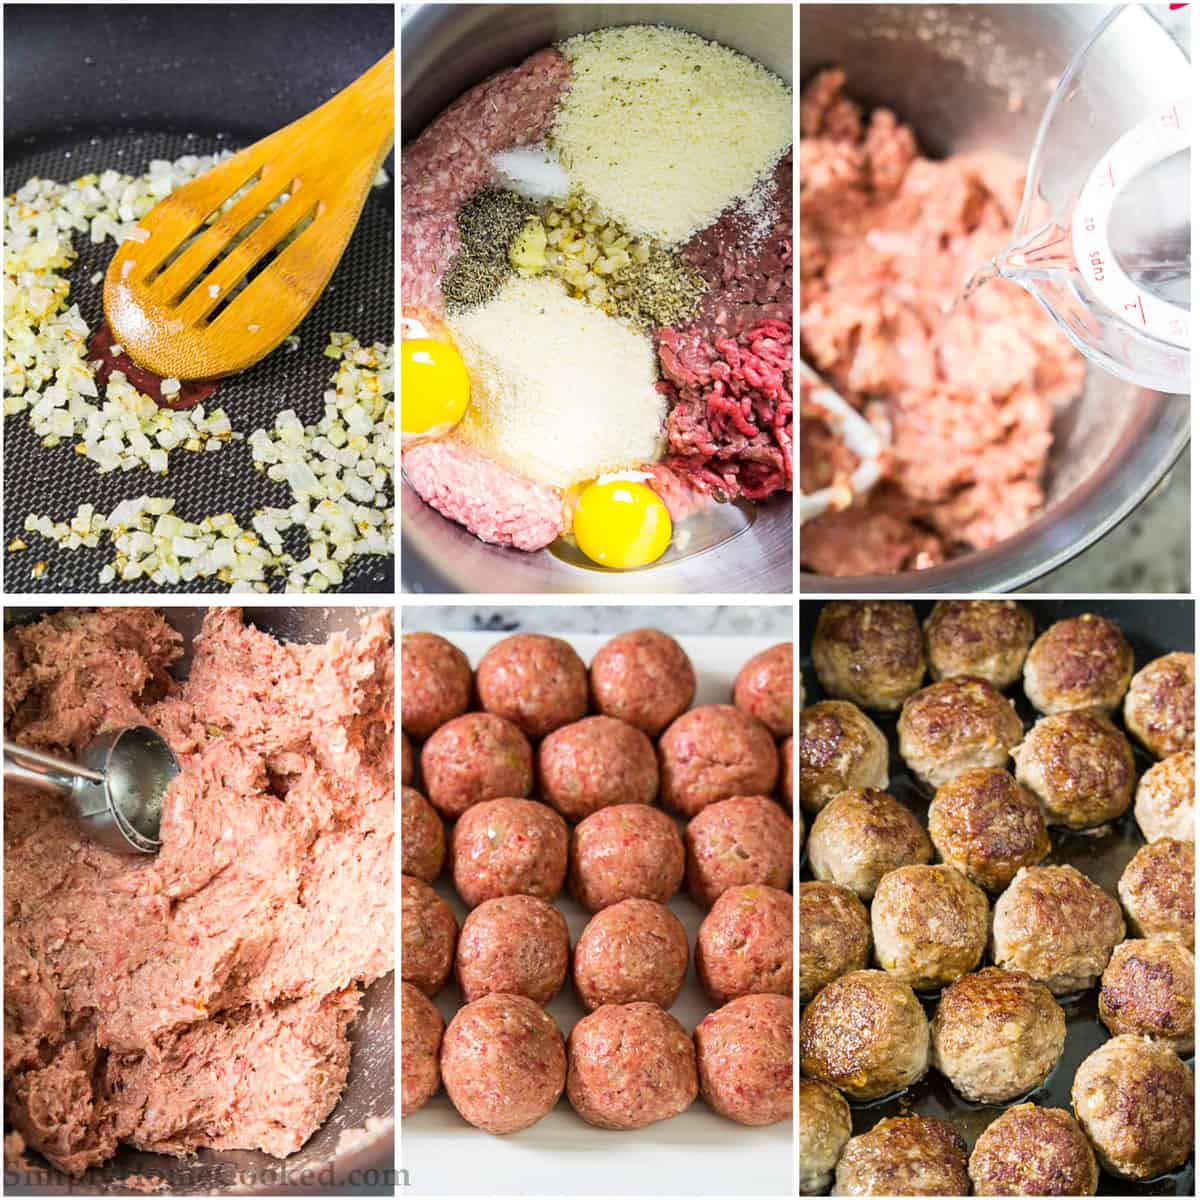 Step by step photo collage of preparing meatballs and cooking them for the best meatballs recipe